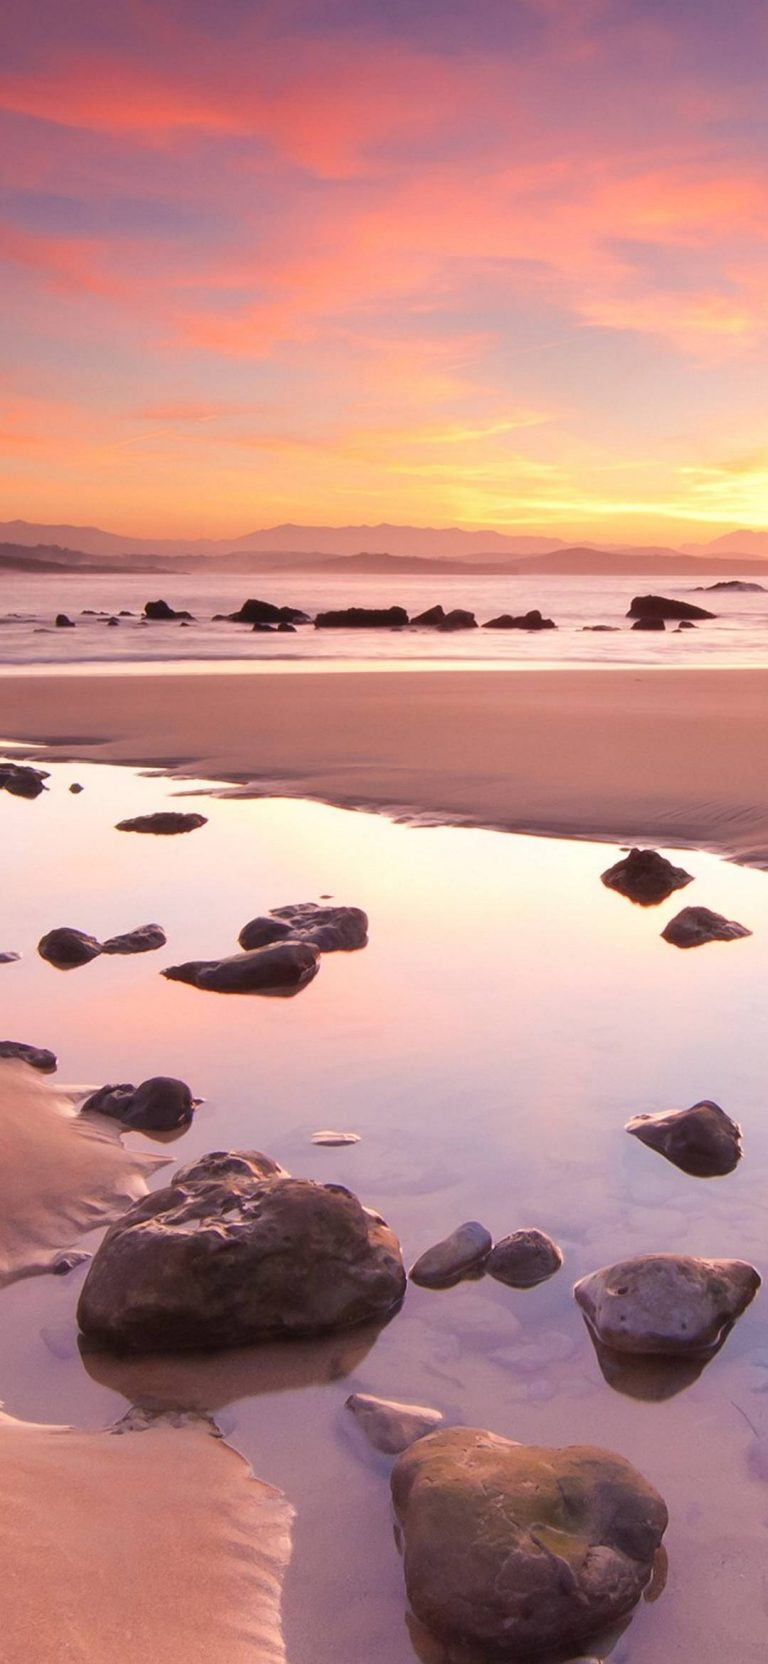 Sunset Mountains Landscapes Beach 1080x2340 768x1664